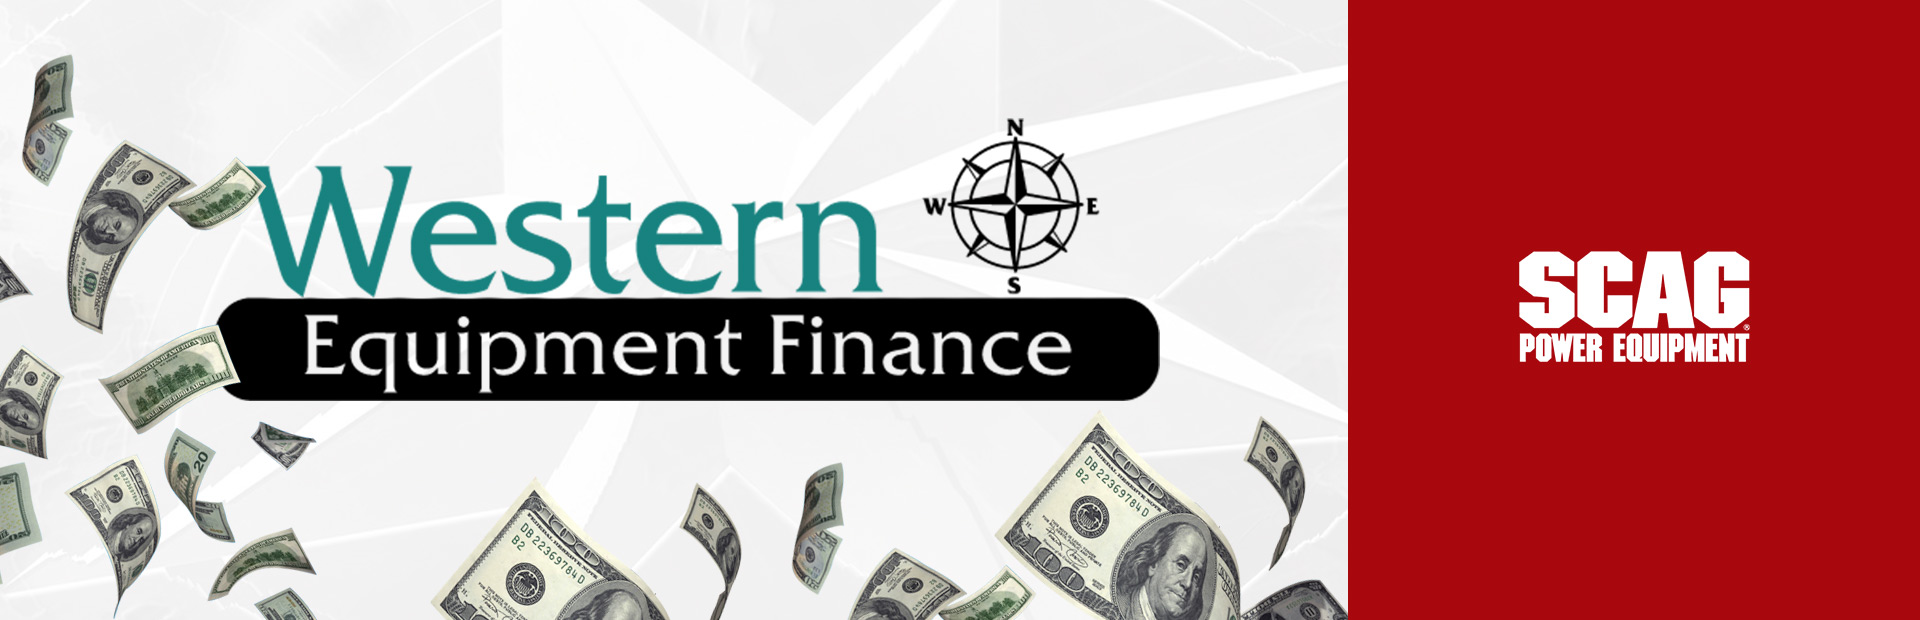 Scag: Western Equipment Financing